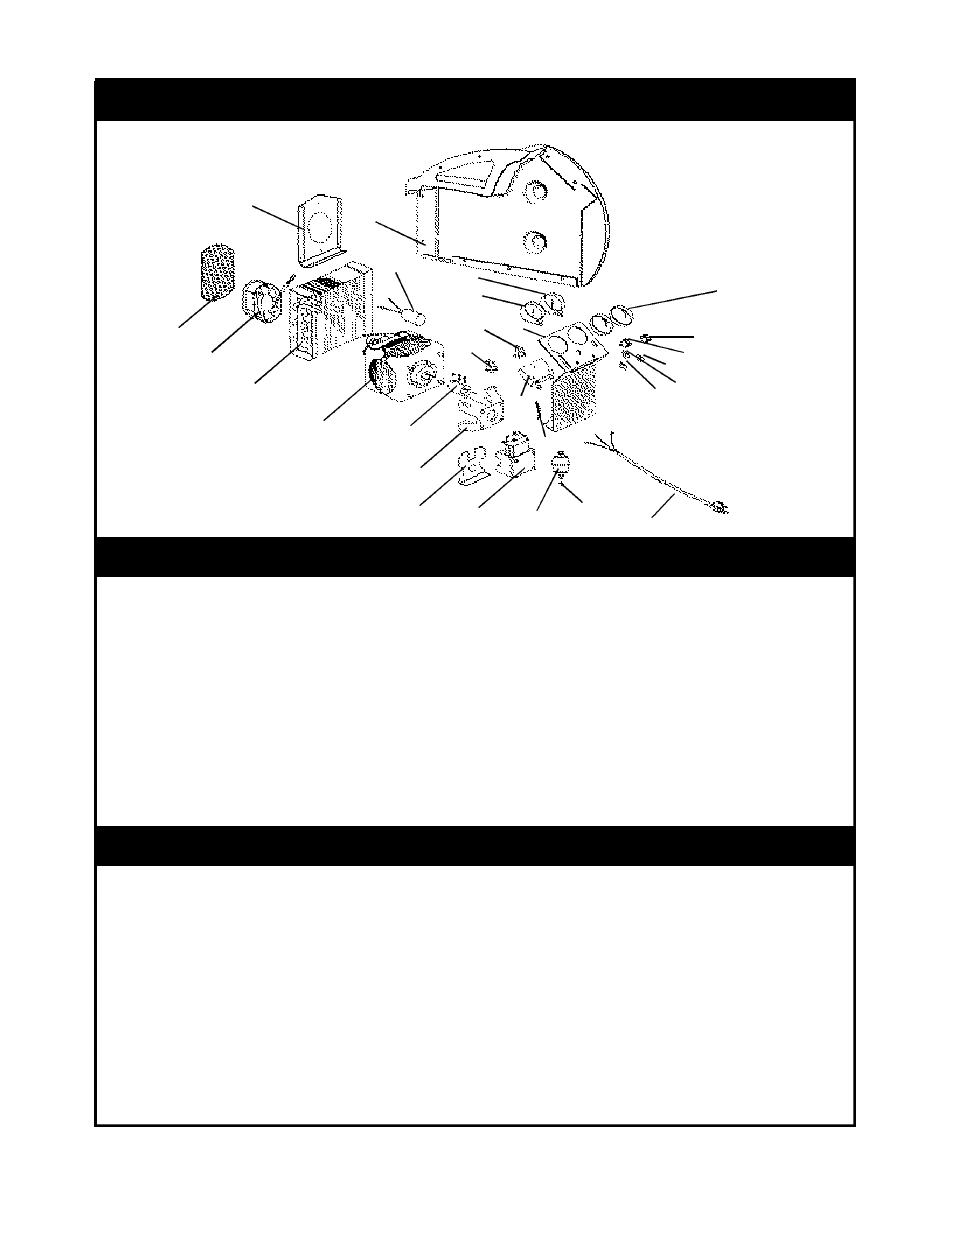 Rg5410a diagram replacement kits & accessories, Rg5410a